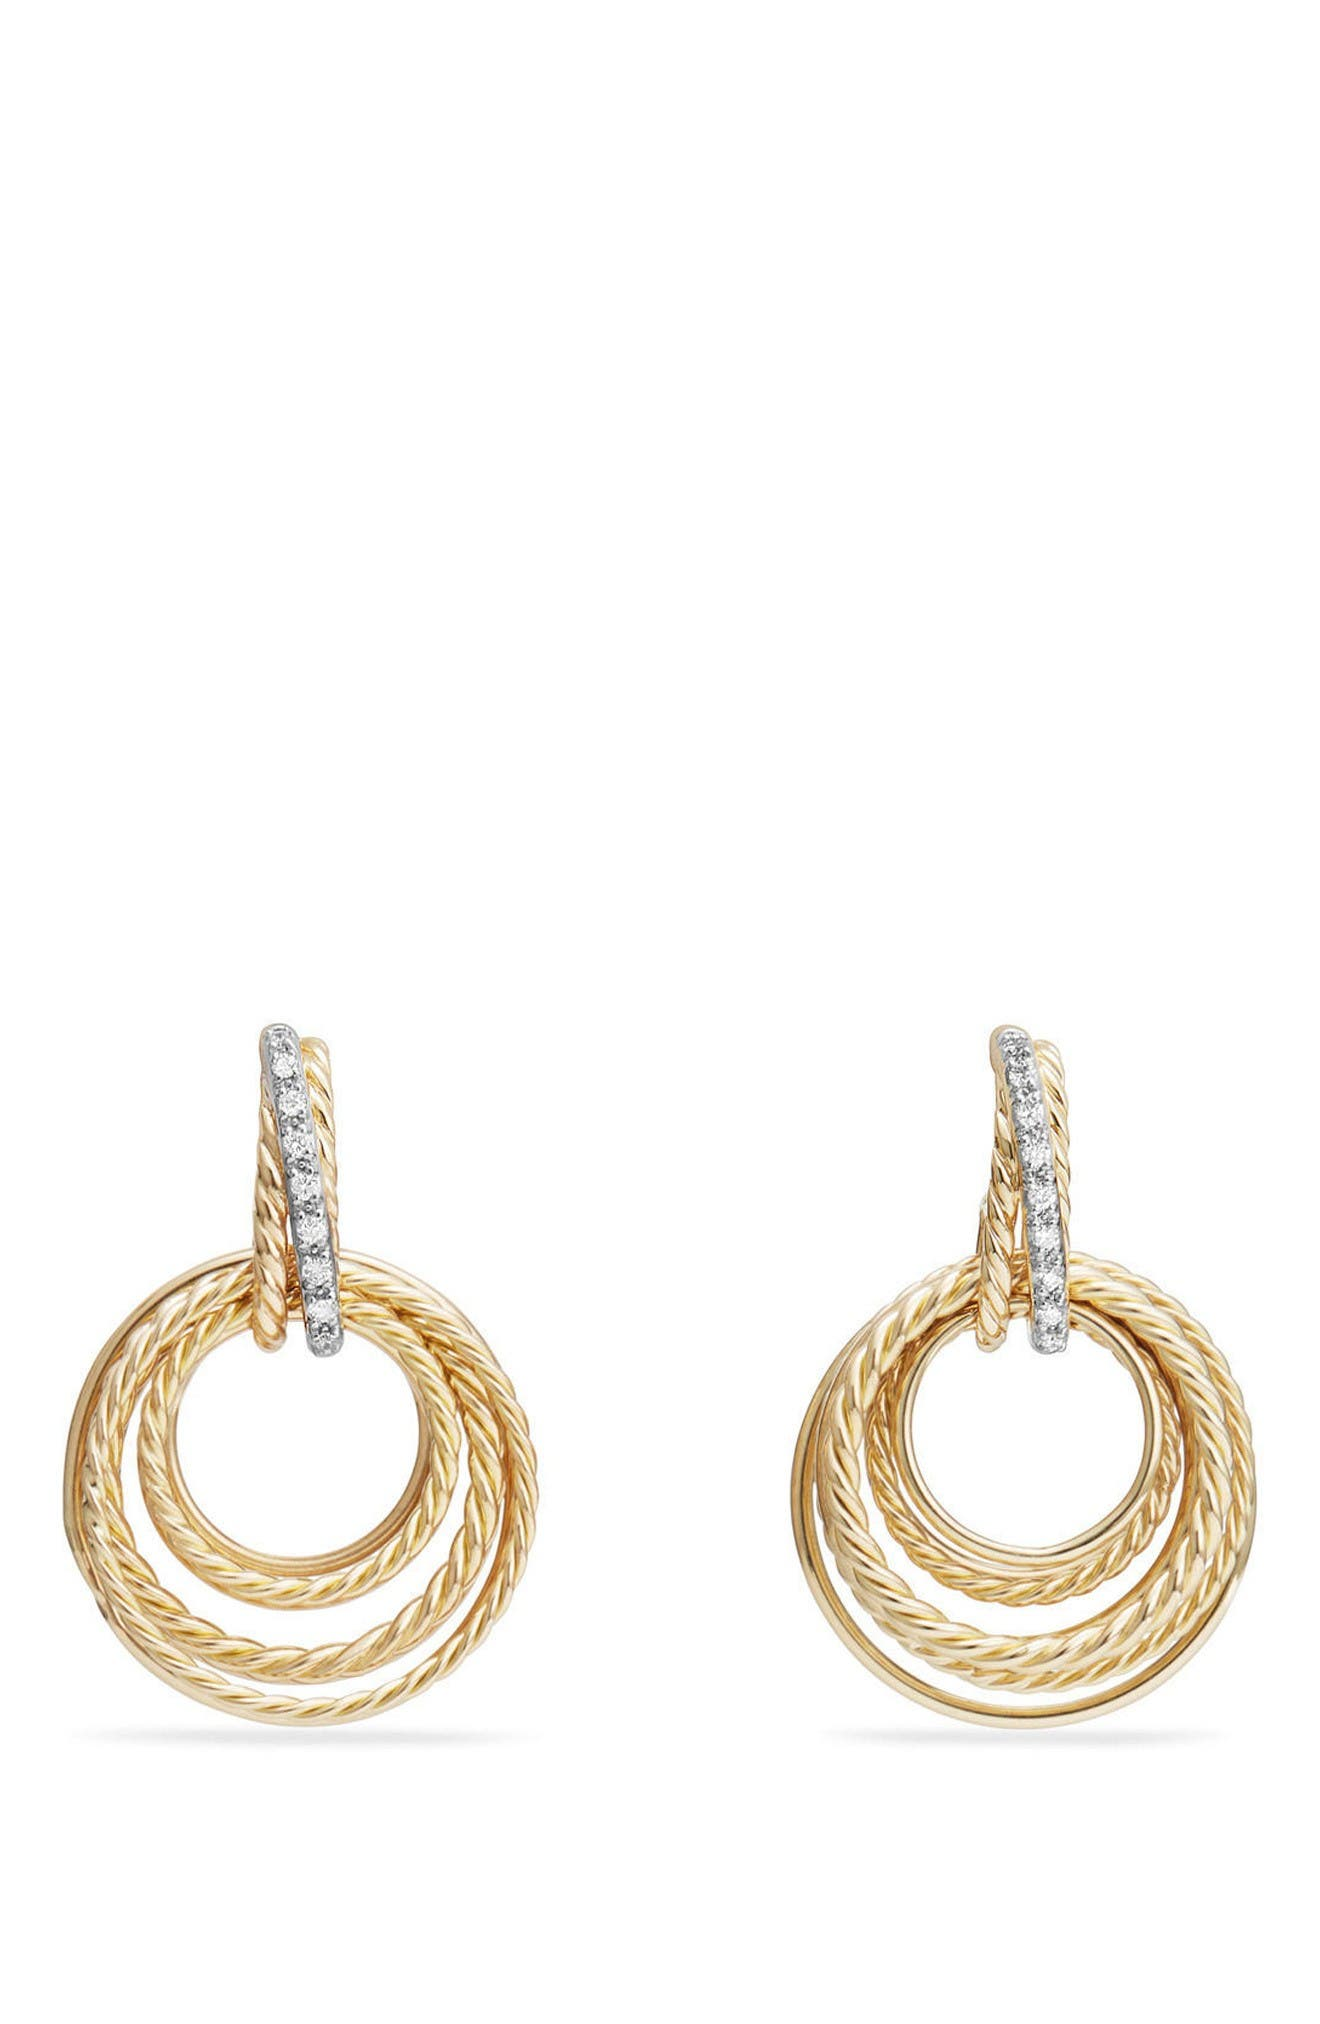 Crossover Diamond Drop Earrings,                         Main,                         color, Yellow Gold/ Diamond